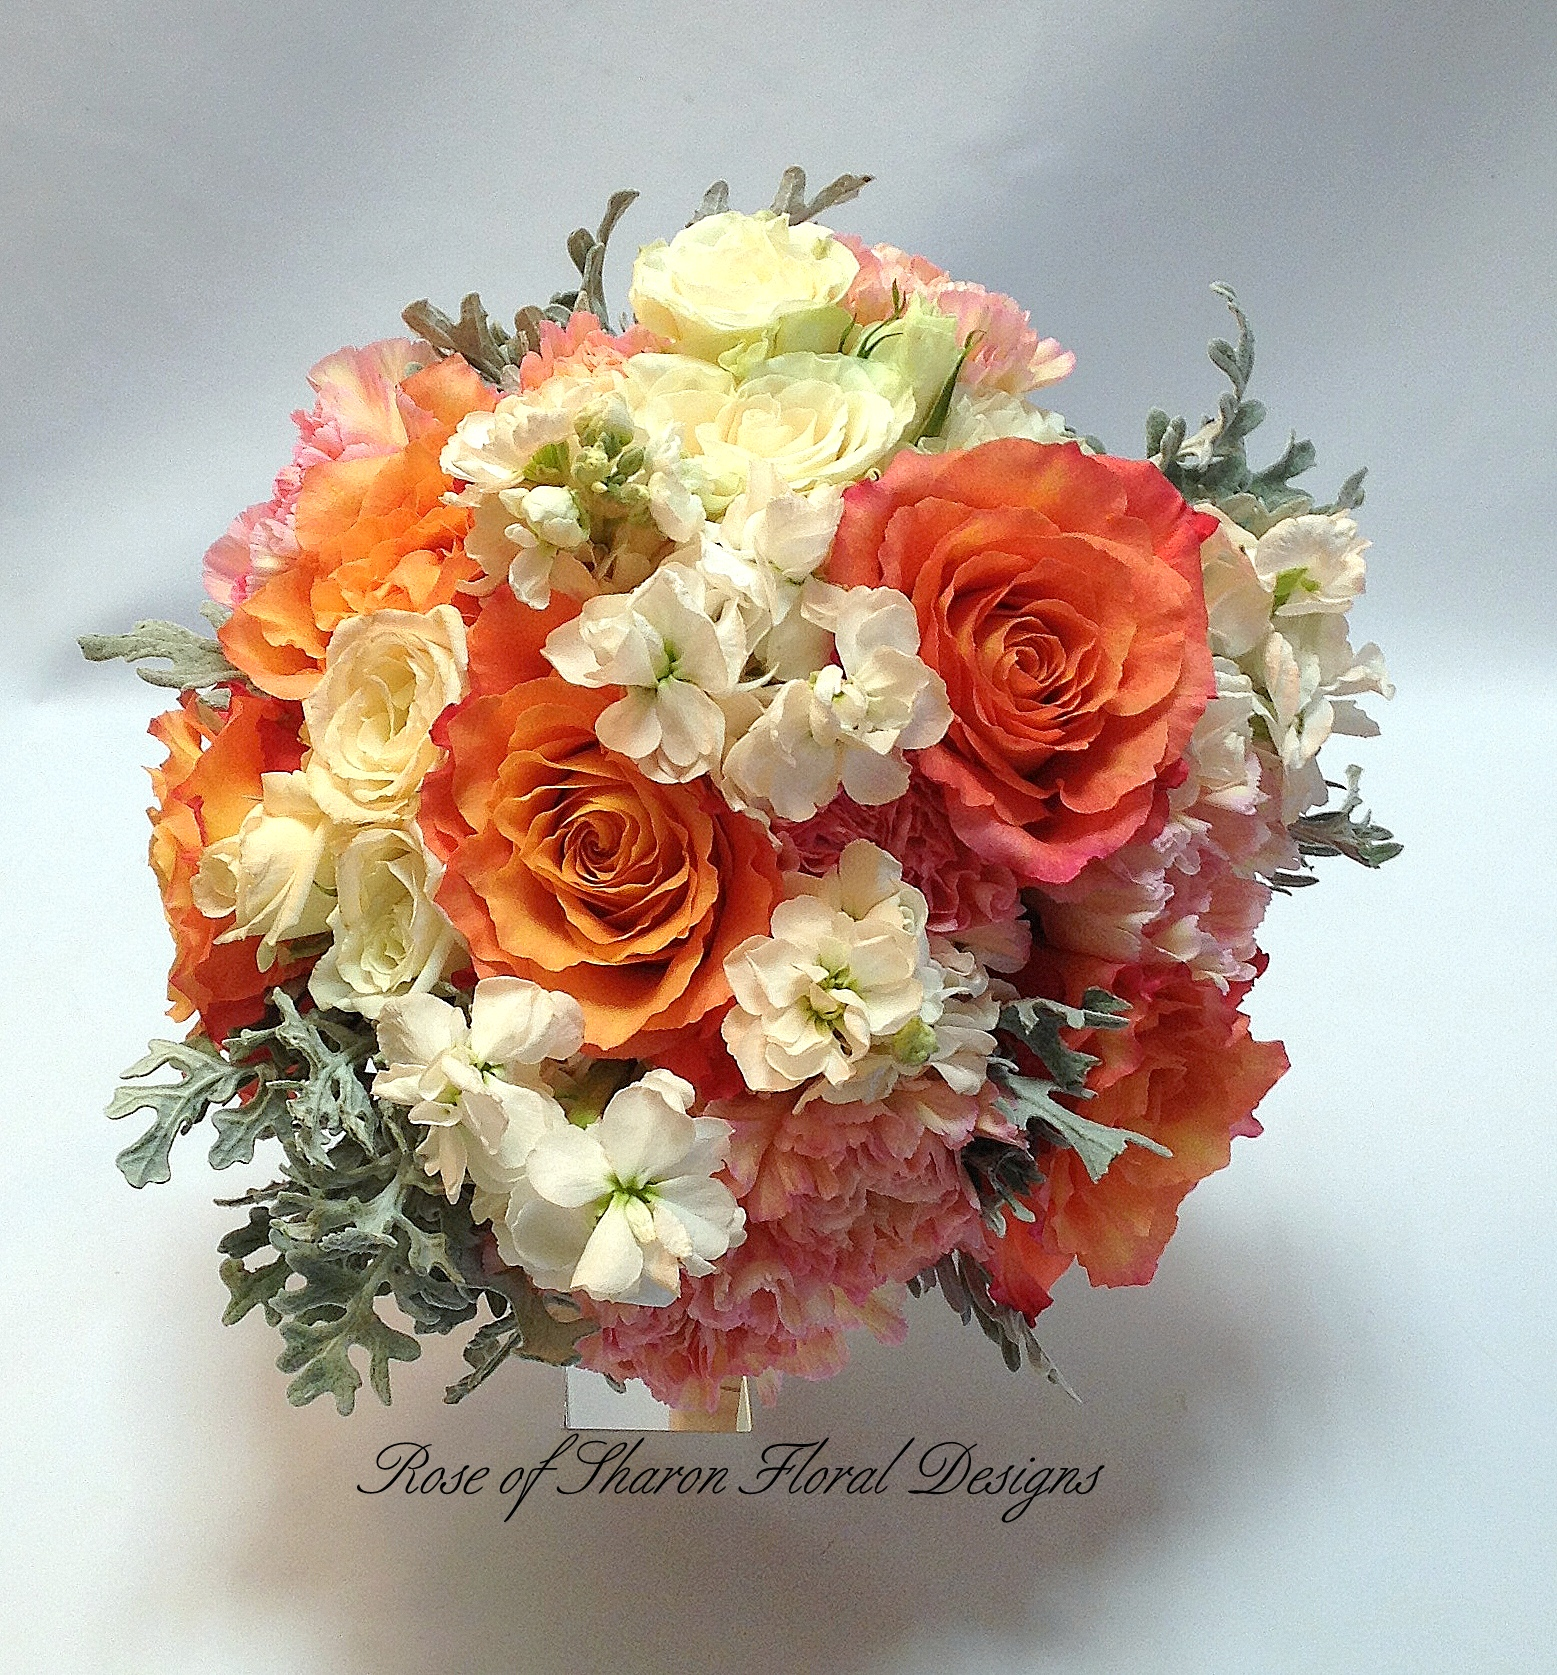 Orange and Cream Hand-Tied Bouquet with Spray Roses, Free Spirit Roses, Carnations and Stock. Rose of Sharon Floral Designs